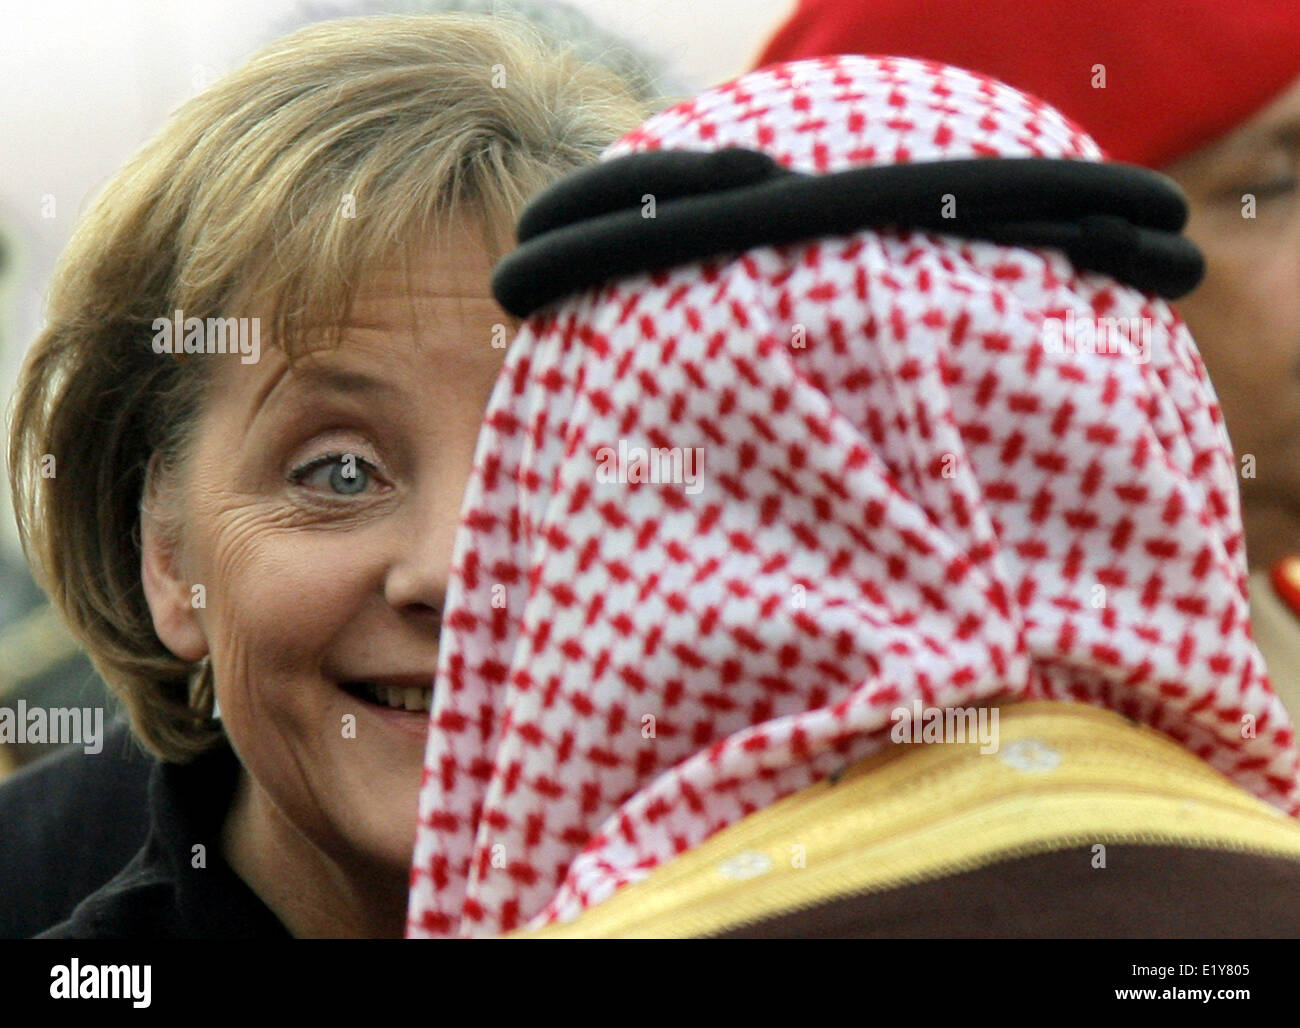 Chancellor Angela Merkel is welcomed with military honours in Riad and greets members of the royal family (04.02.2007). - Stock Image